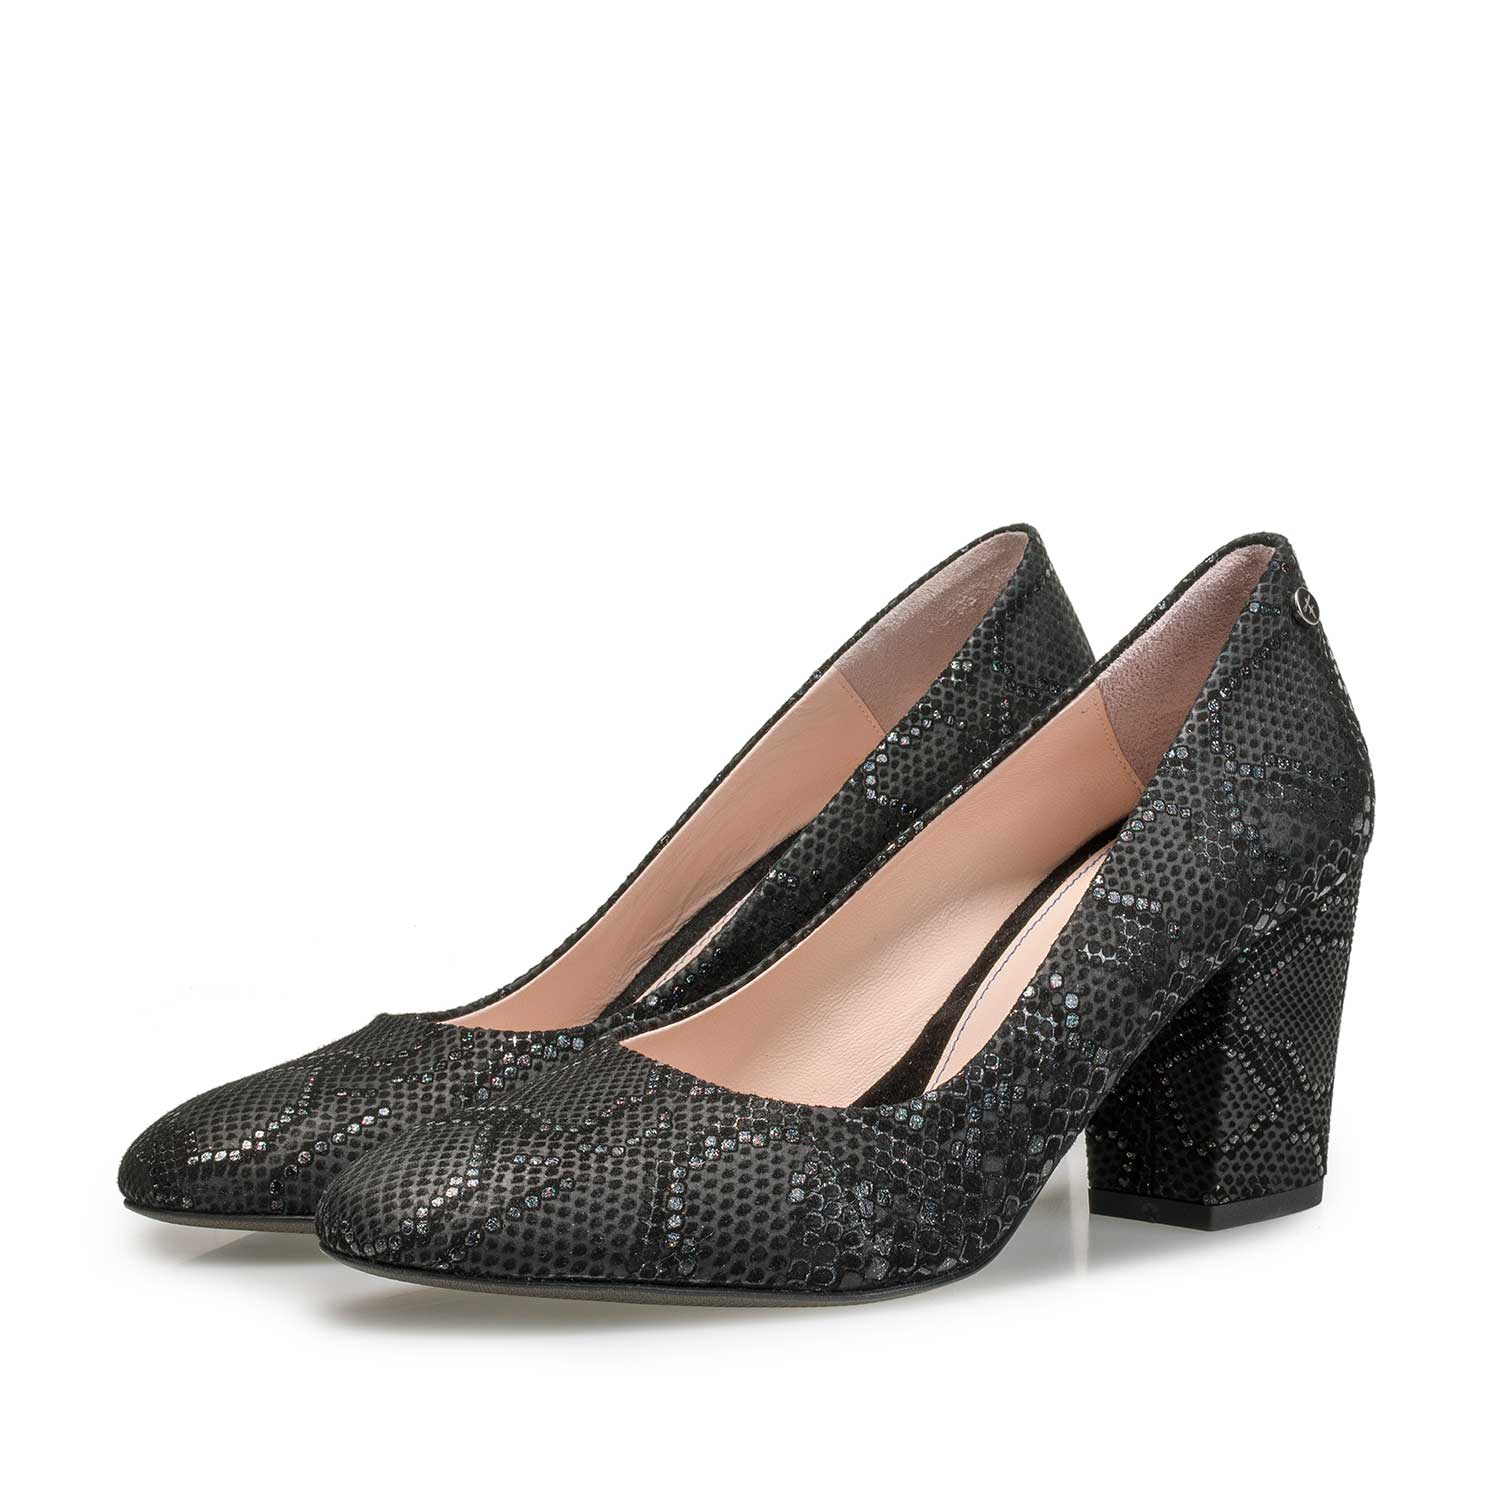 85507/00 - Black leather high heels with snake print